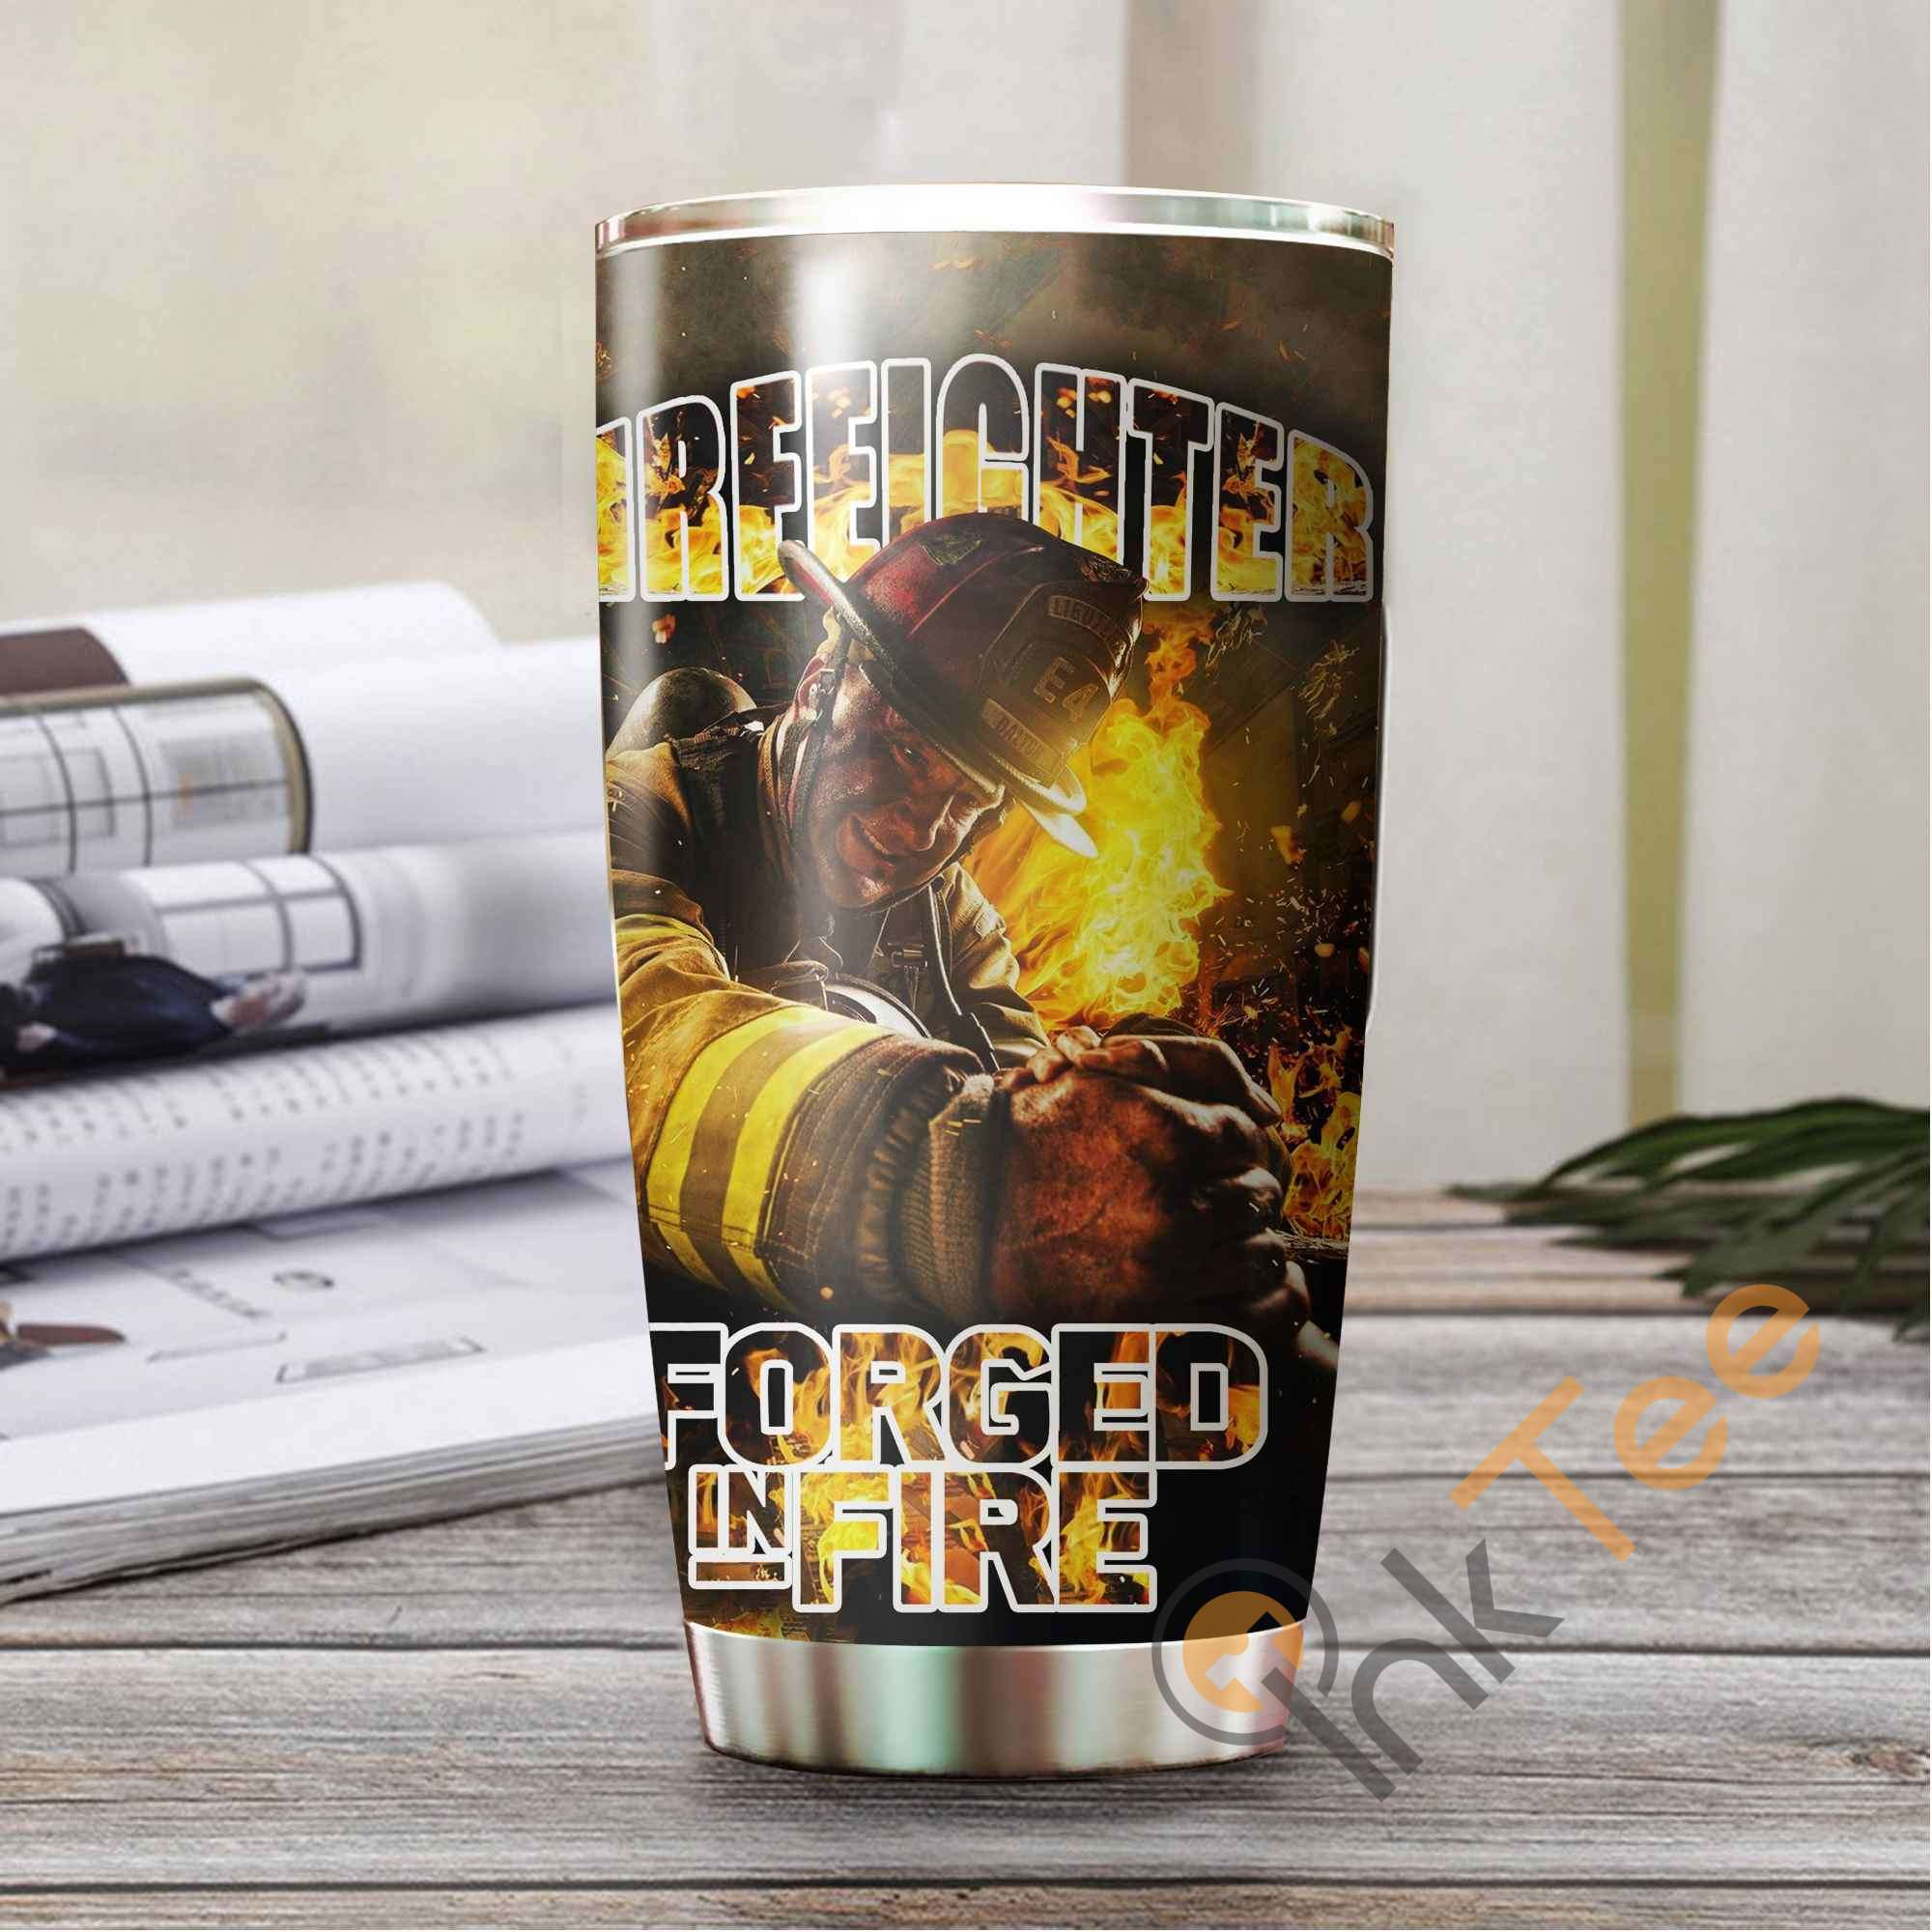 Firefighter ' Forged In Fire Amazon Best Seller Sku 3457 Stainless Steel Tumbler